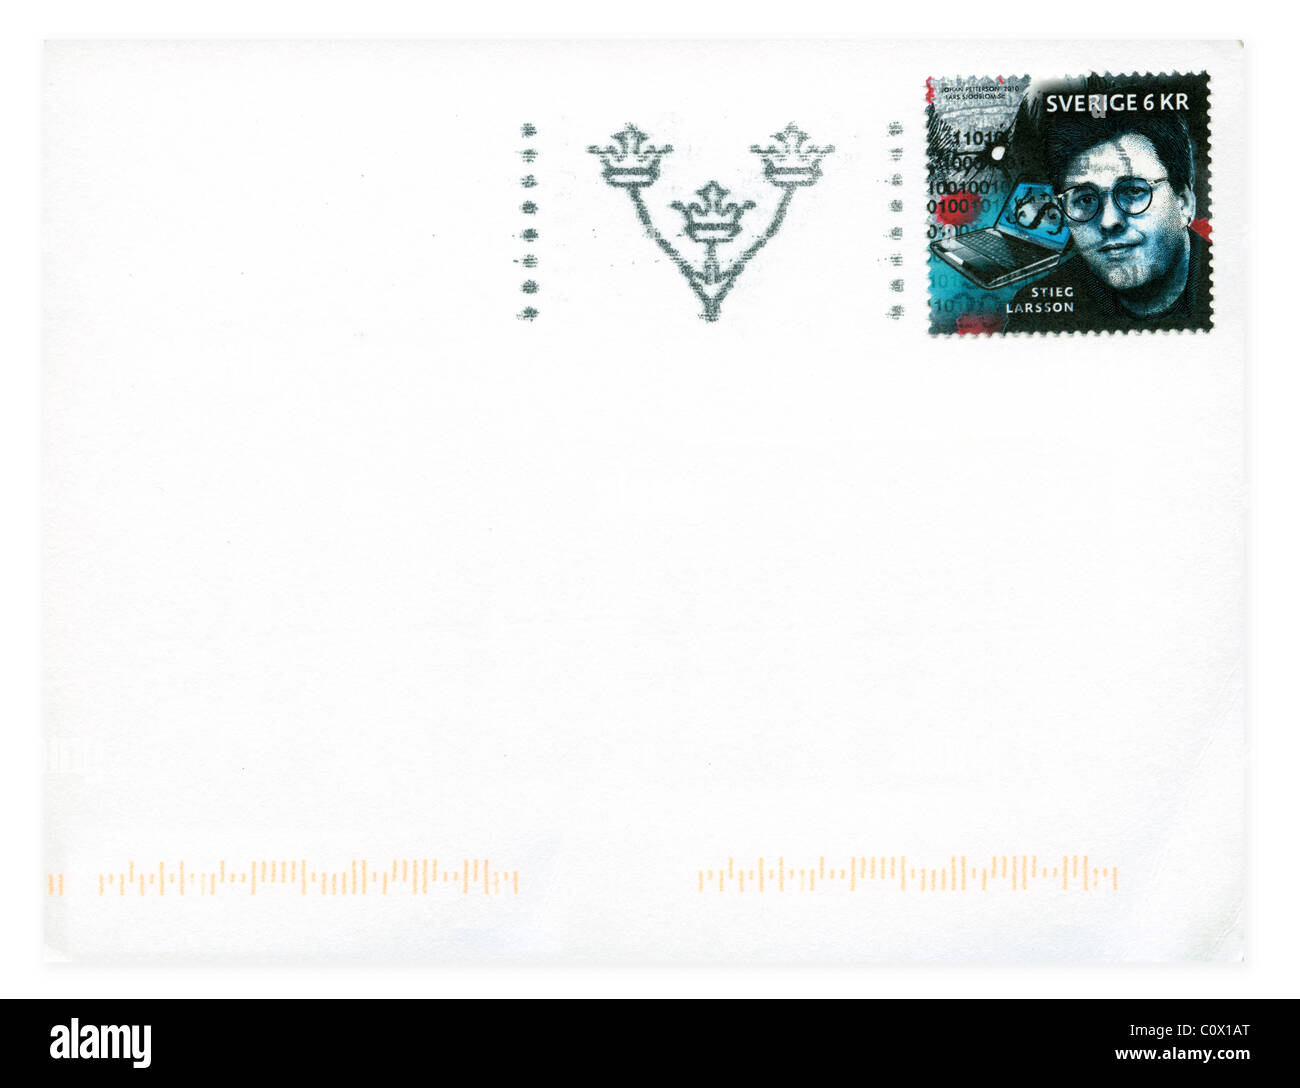 Postage stamp from Sweden in the  Crime Novels series issued in 2010 - Stock Image